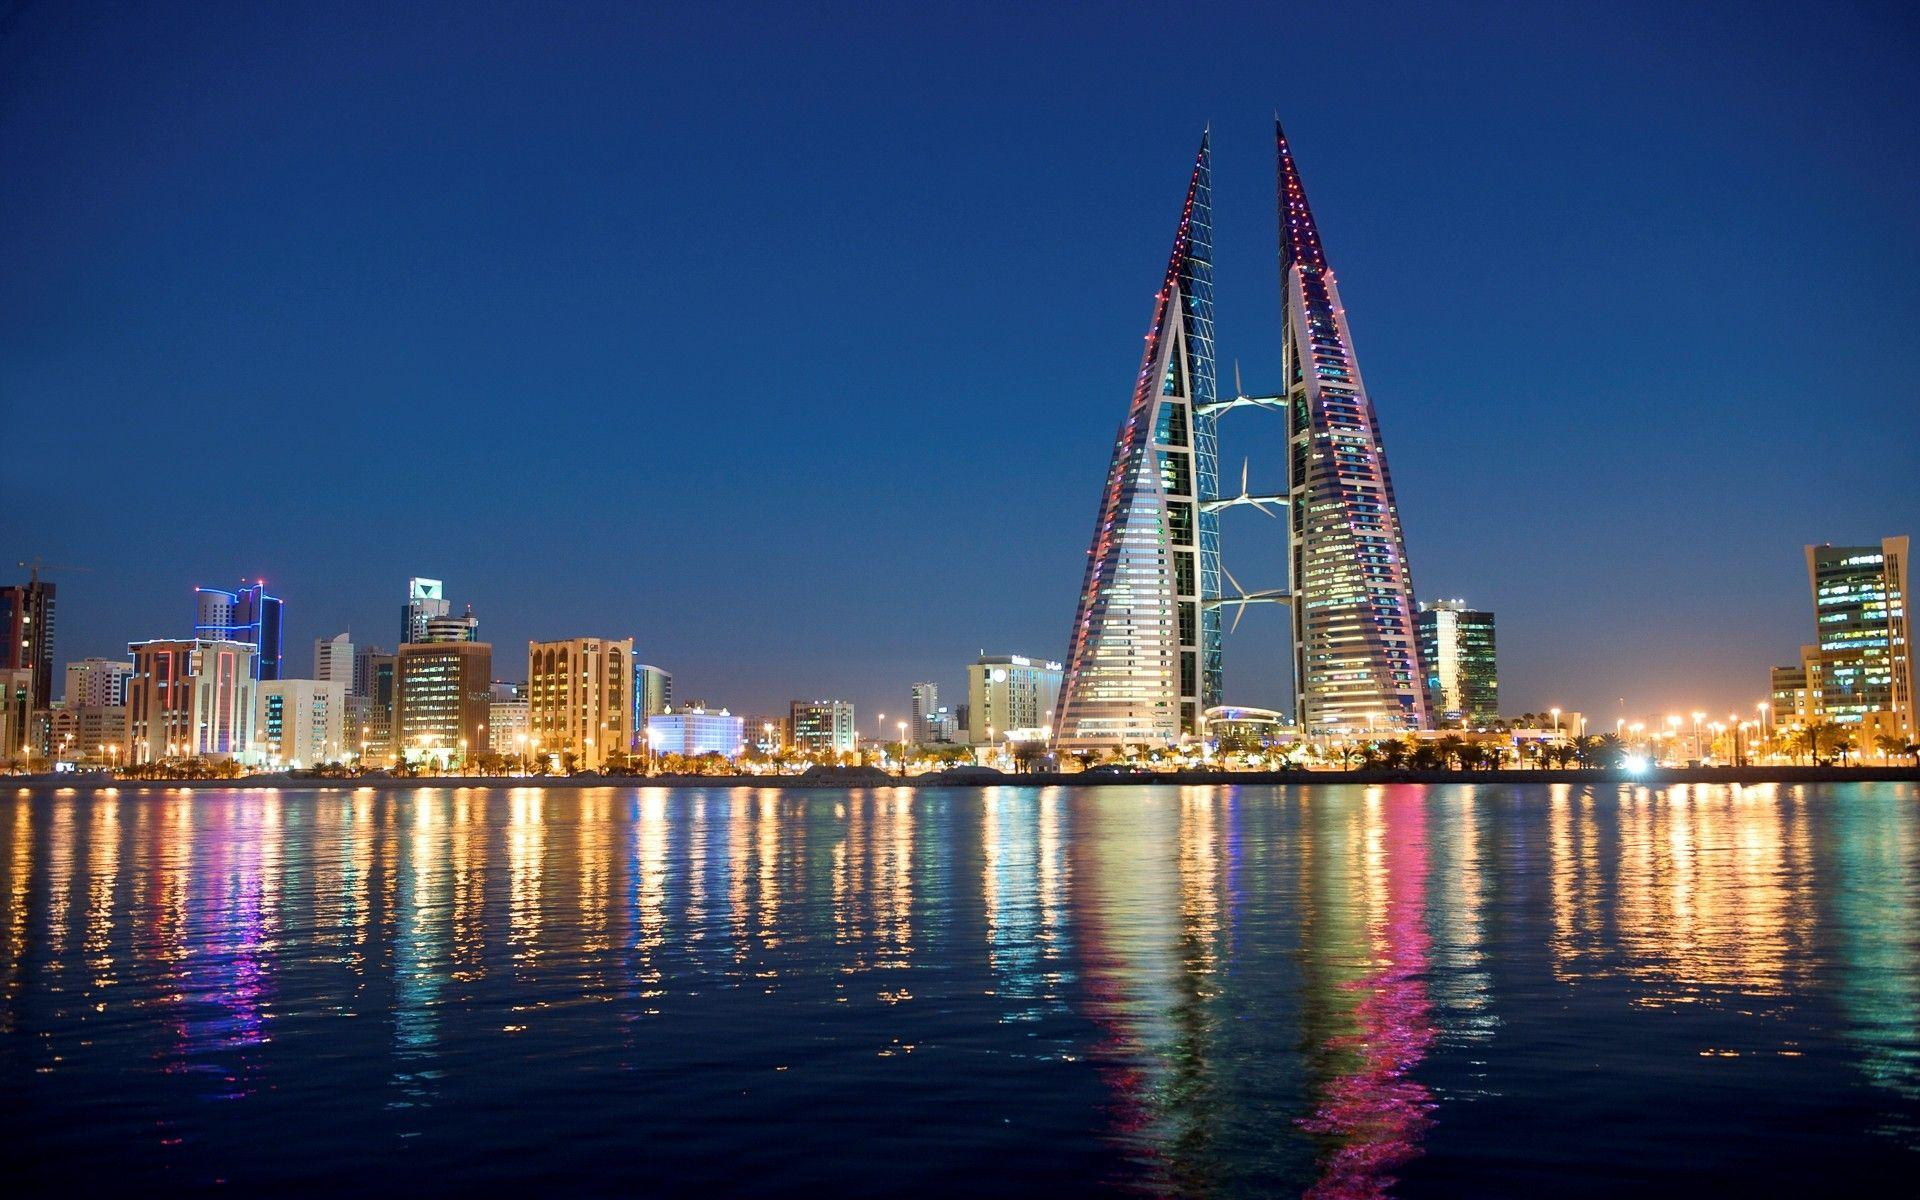 Bahrain Wallpapers, HD Images Bahrain Collection, Top4Themes